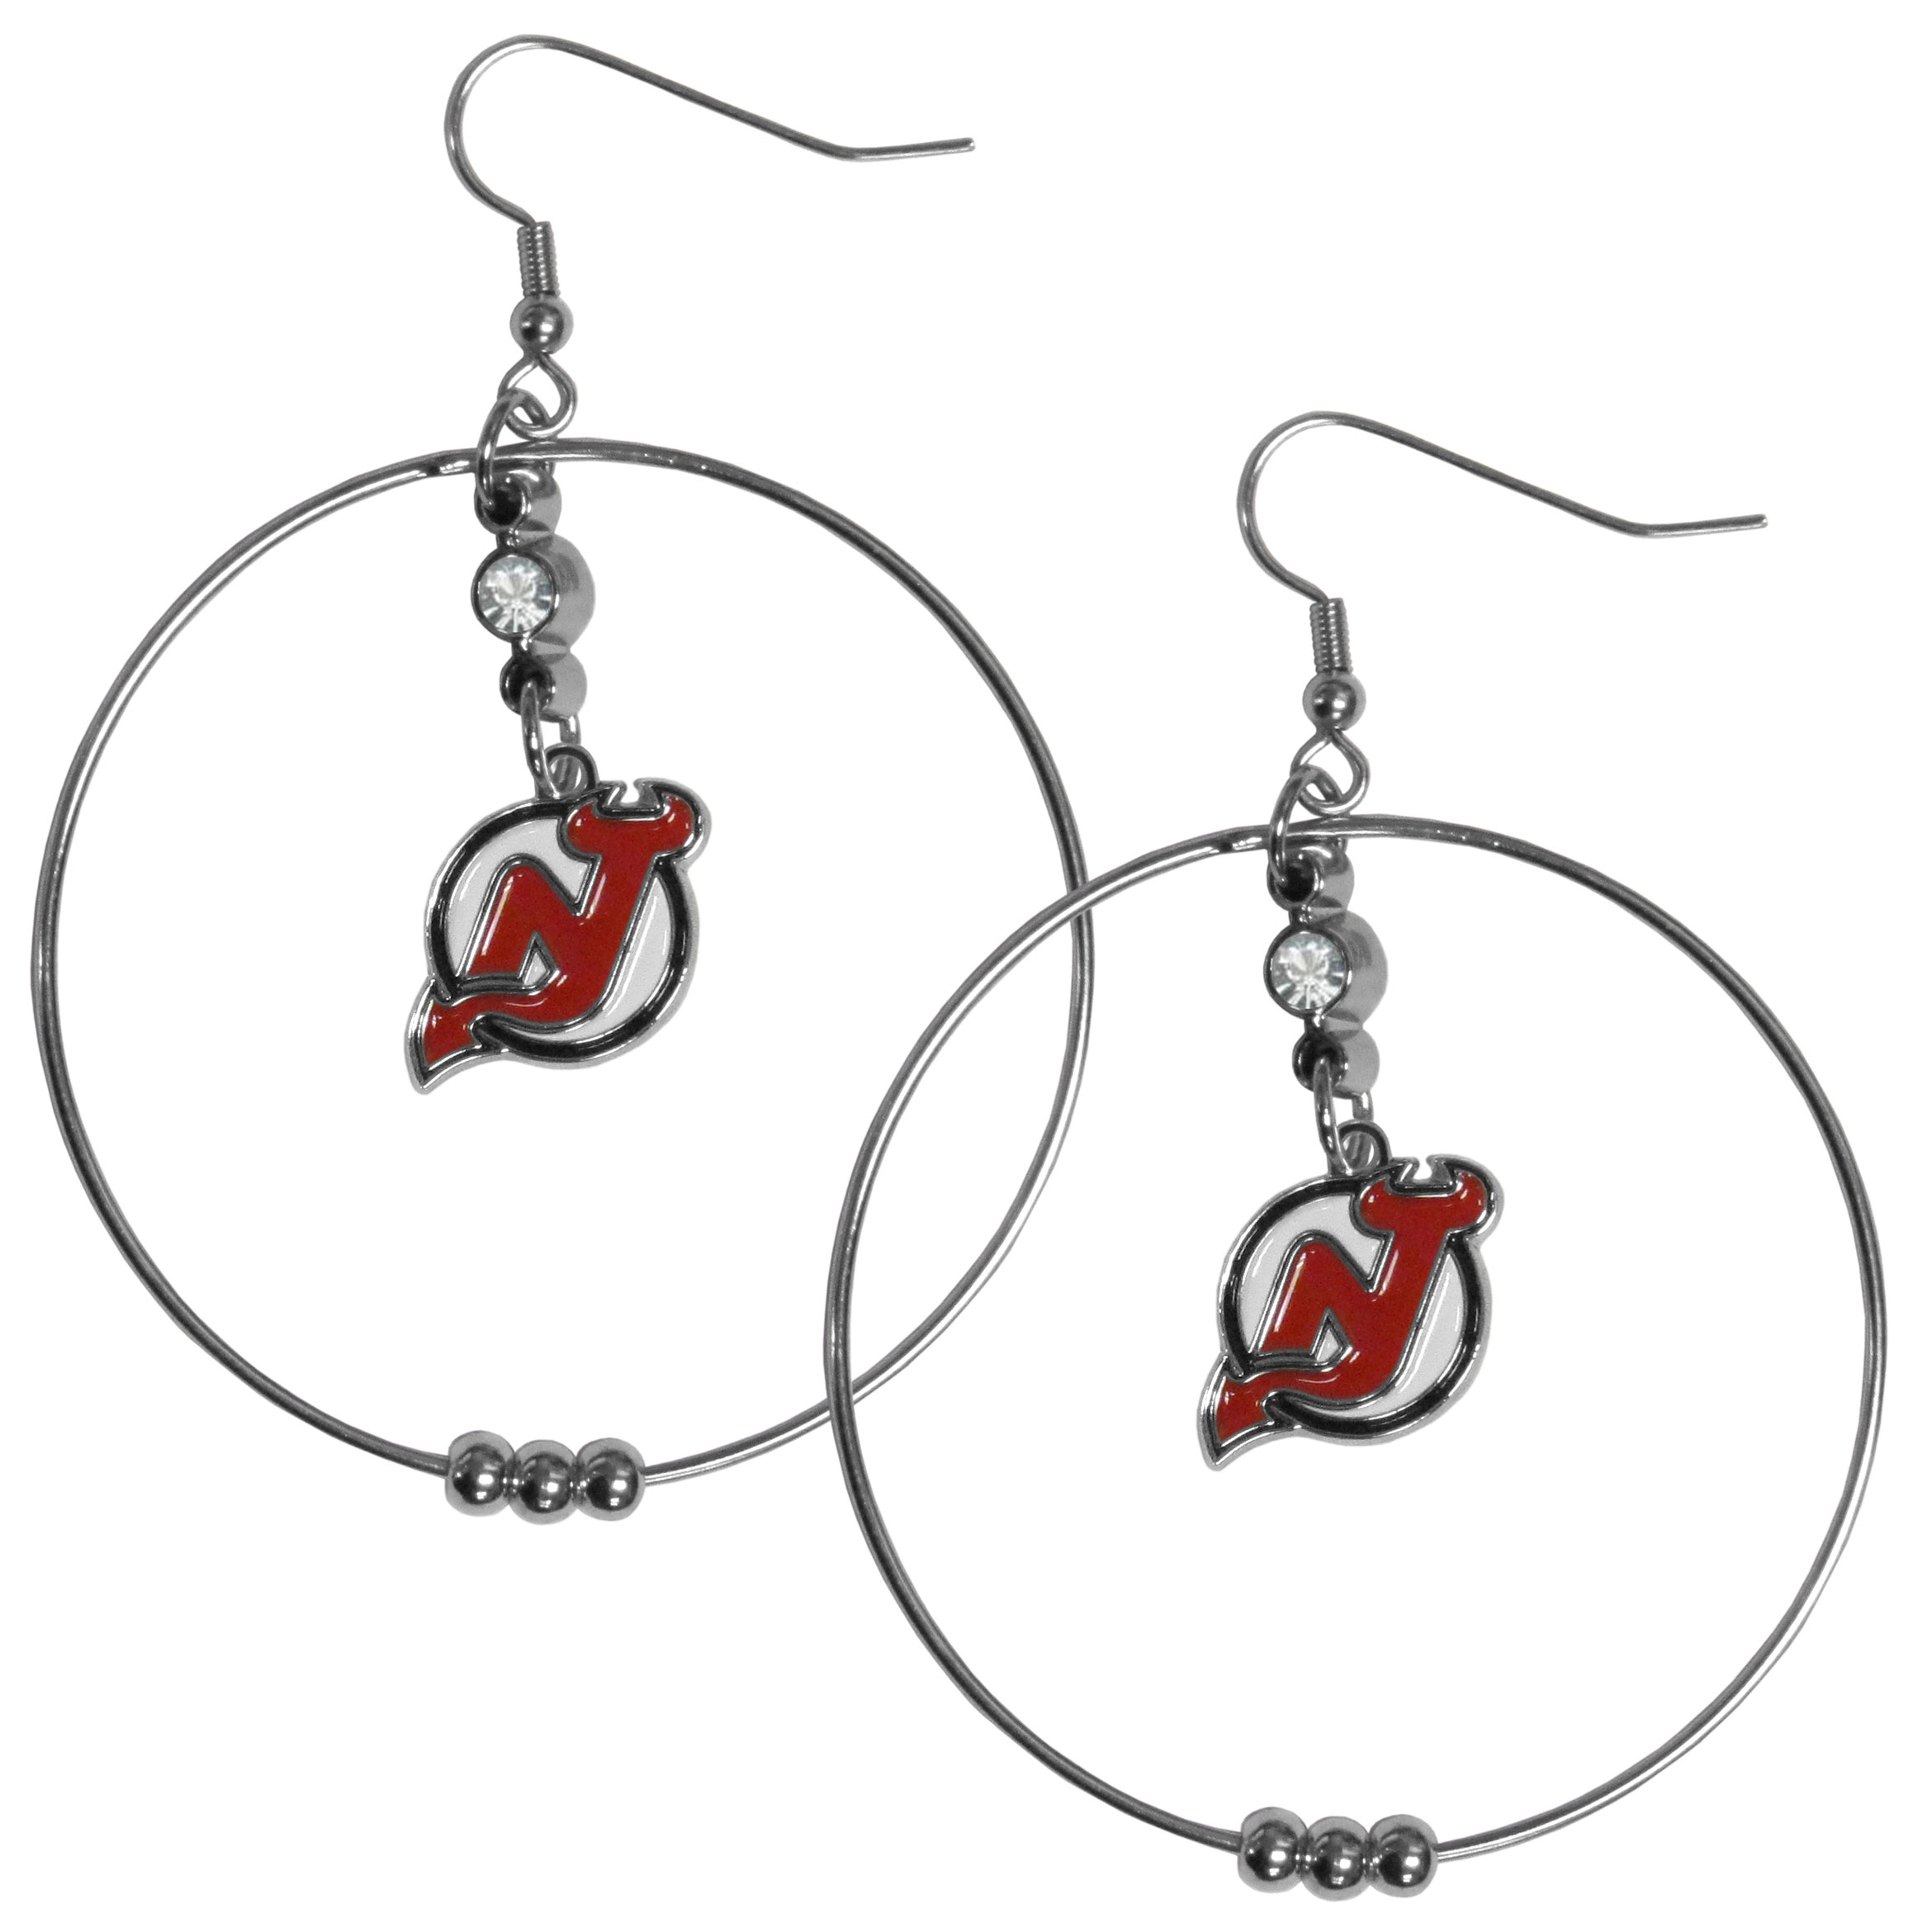 New Jersey Devils® 2 Inch Hoop Earrings - Our large hoop earrings have a fully cast and enameled New Jersey Devils® charm with enameled detail and a high polish nickel free chrome finish and rhinestone access. Hypoallergenic fishhook posts.